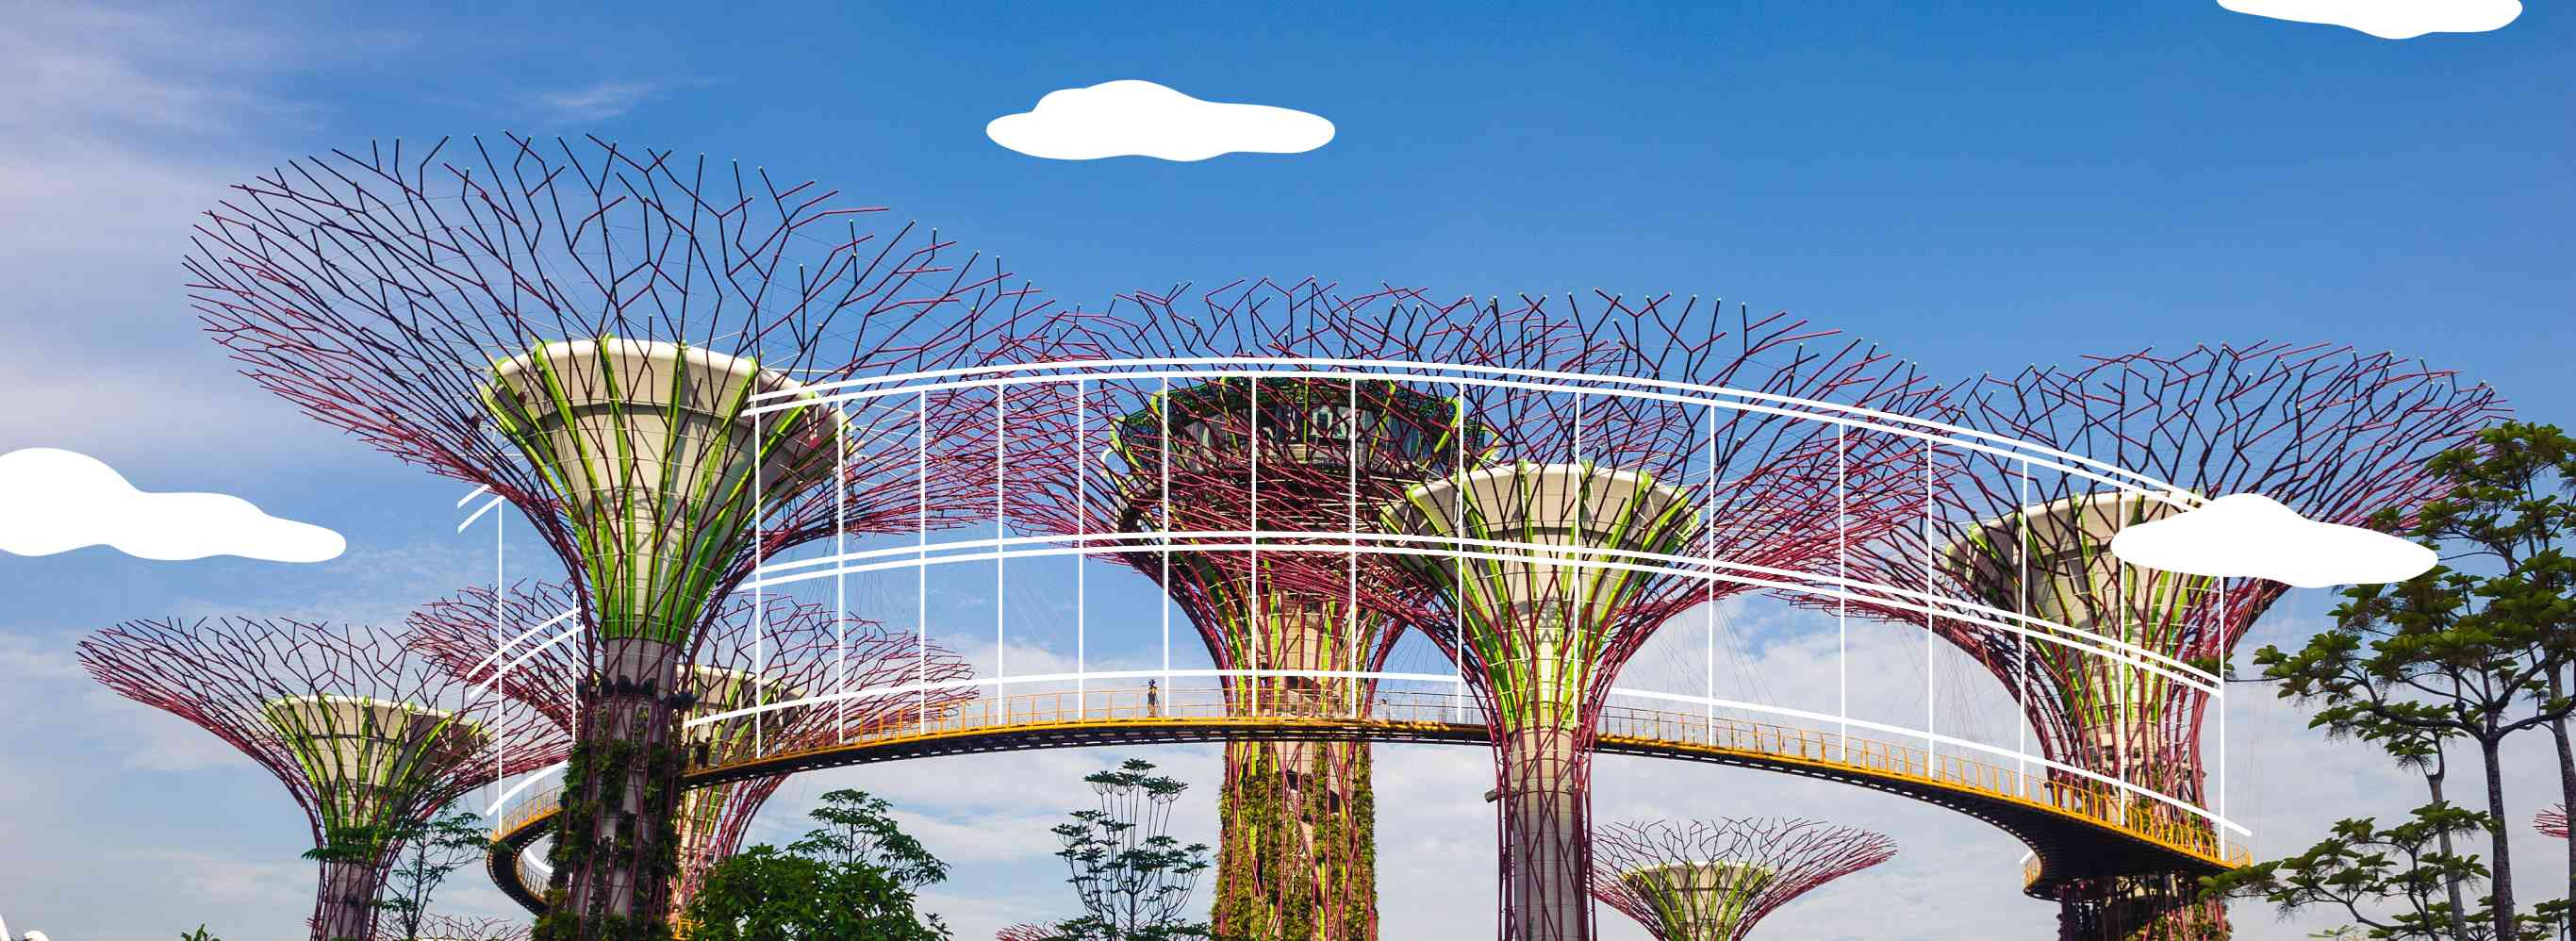 Super trees in Singapore with illustrated lines and clouds